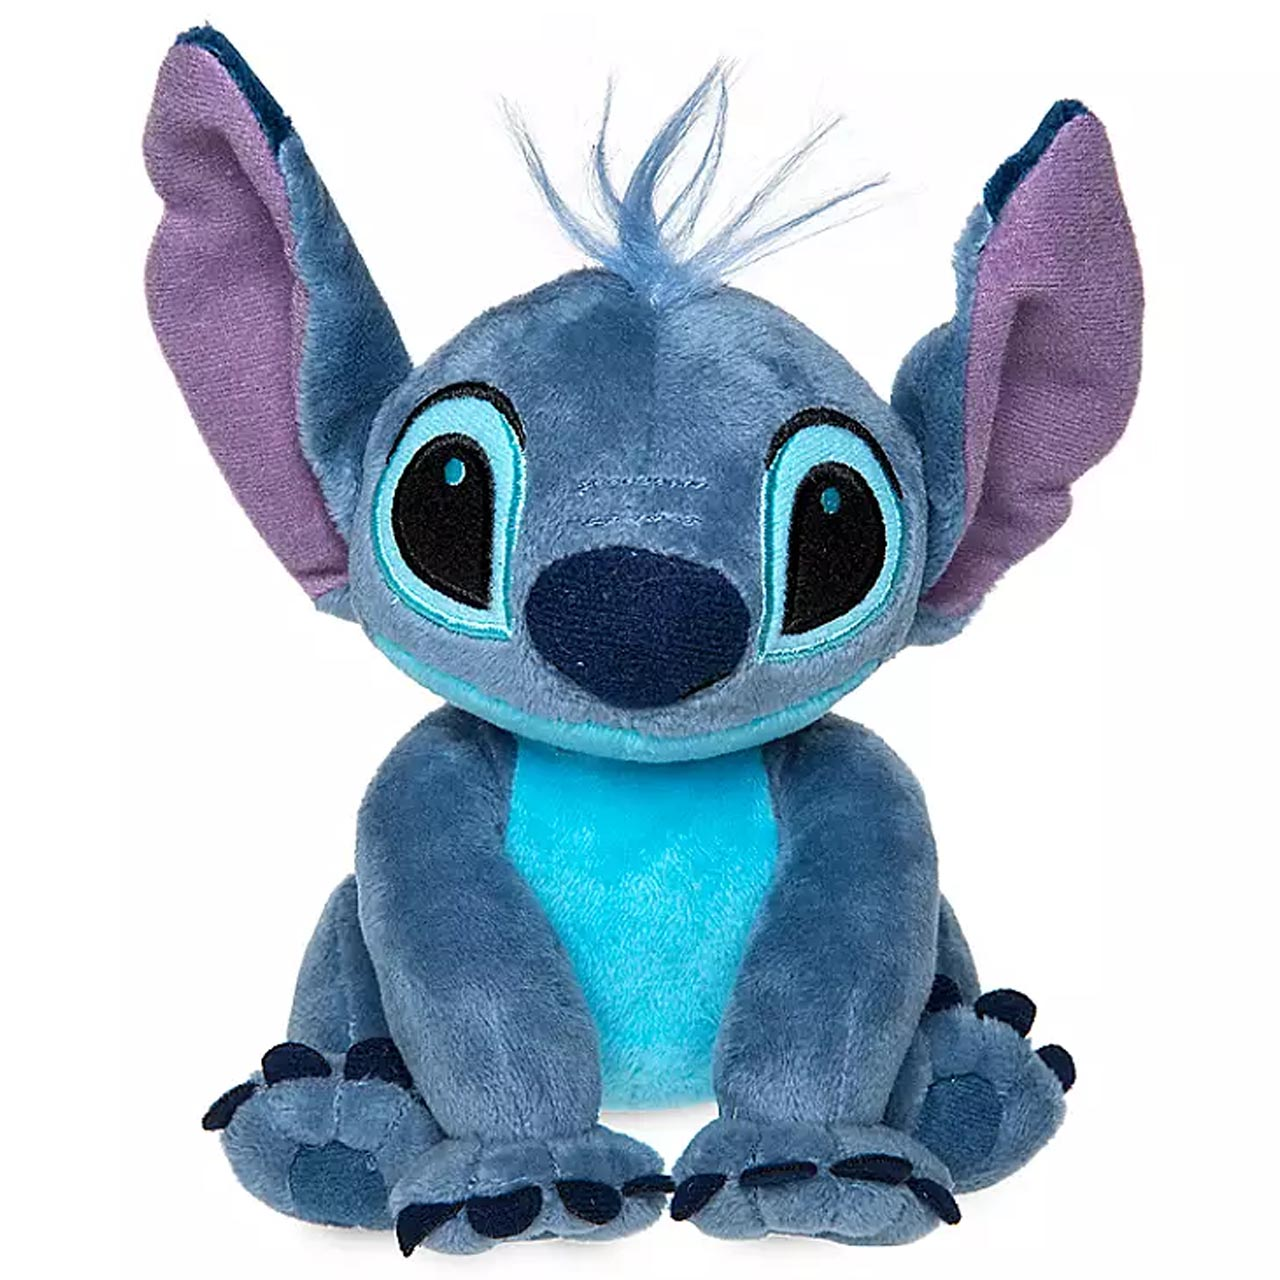 Disney Lilo & Stitch Mini Bean Bag Stitch Plush Disney Store